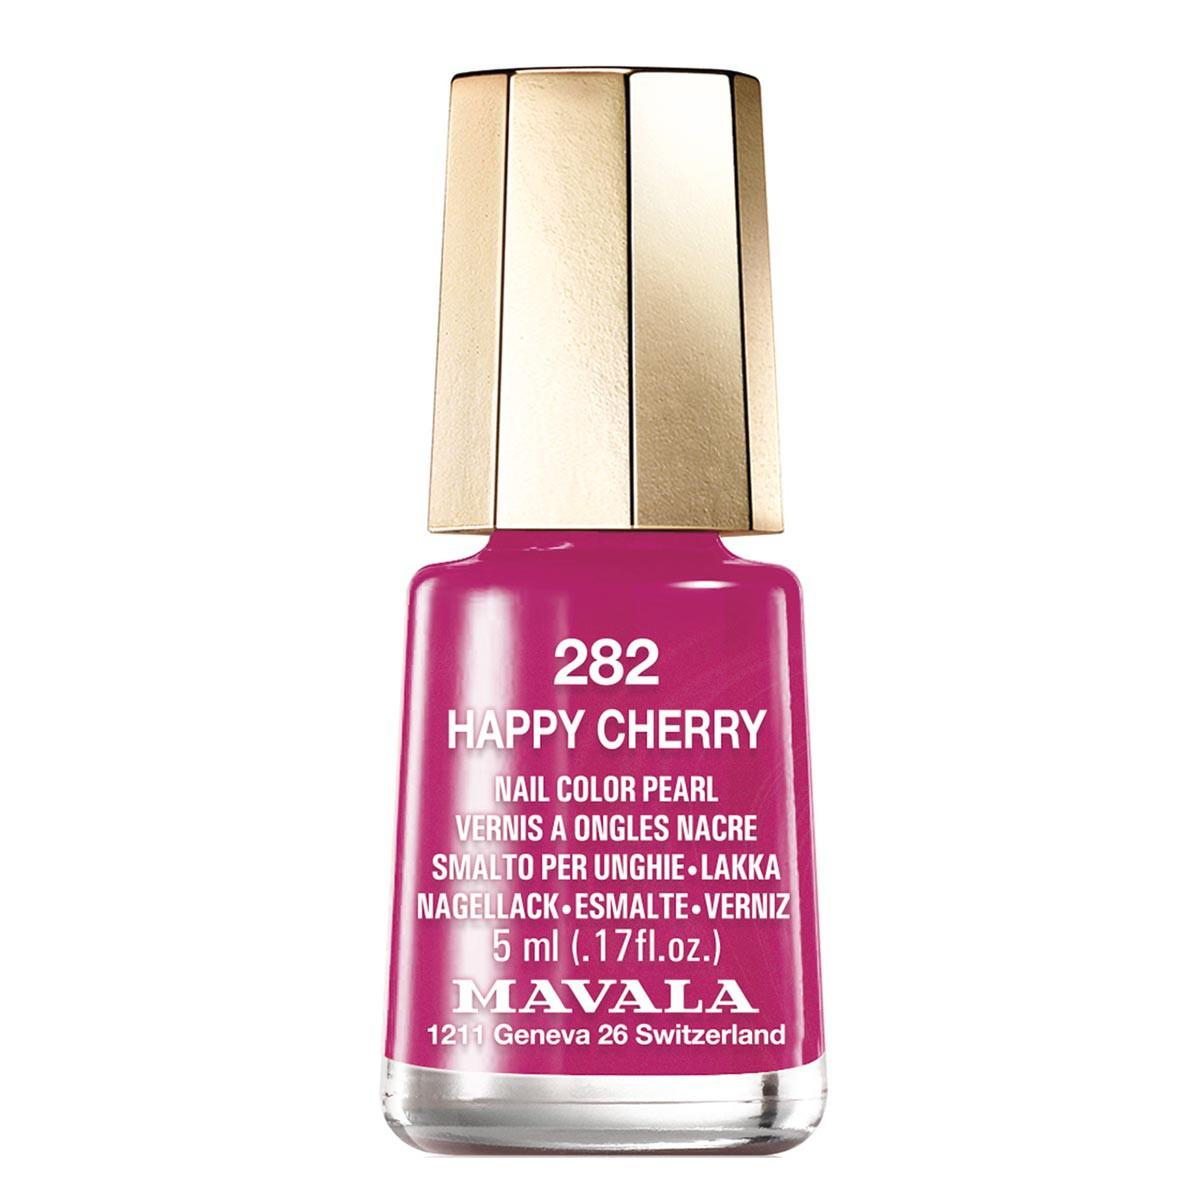 Mavala Nail Color Cream 282